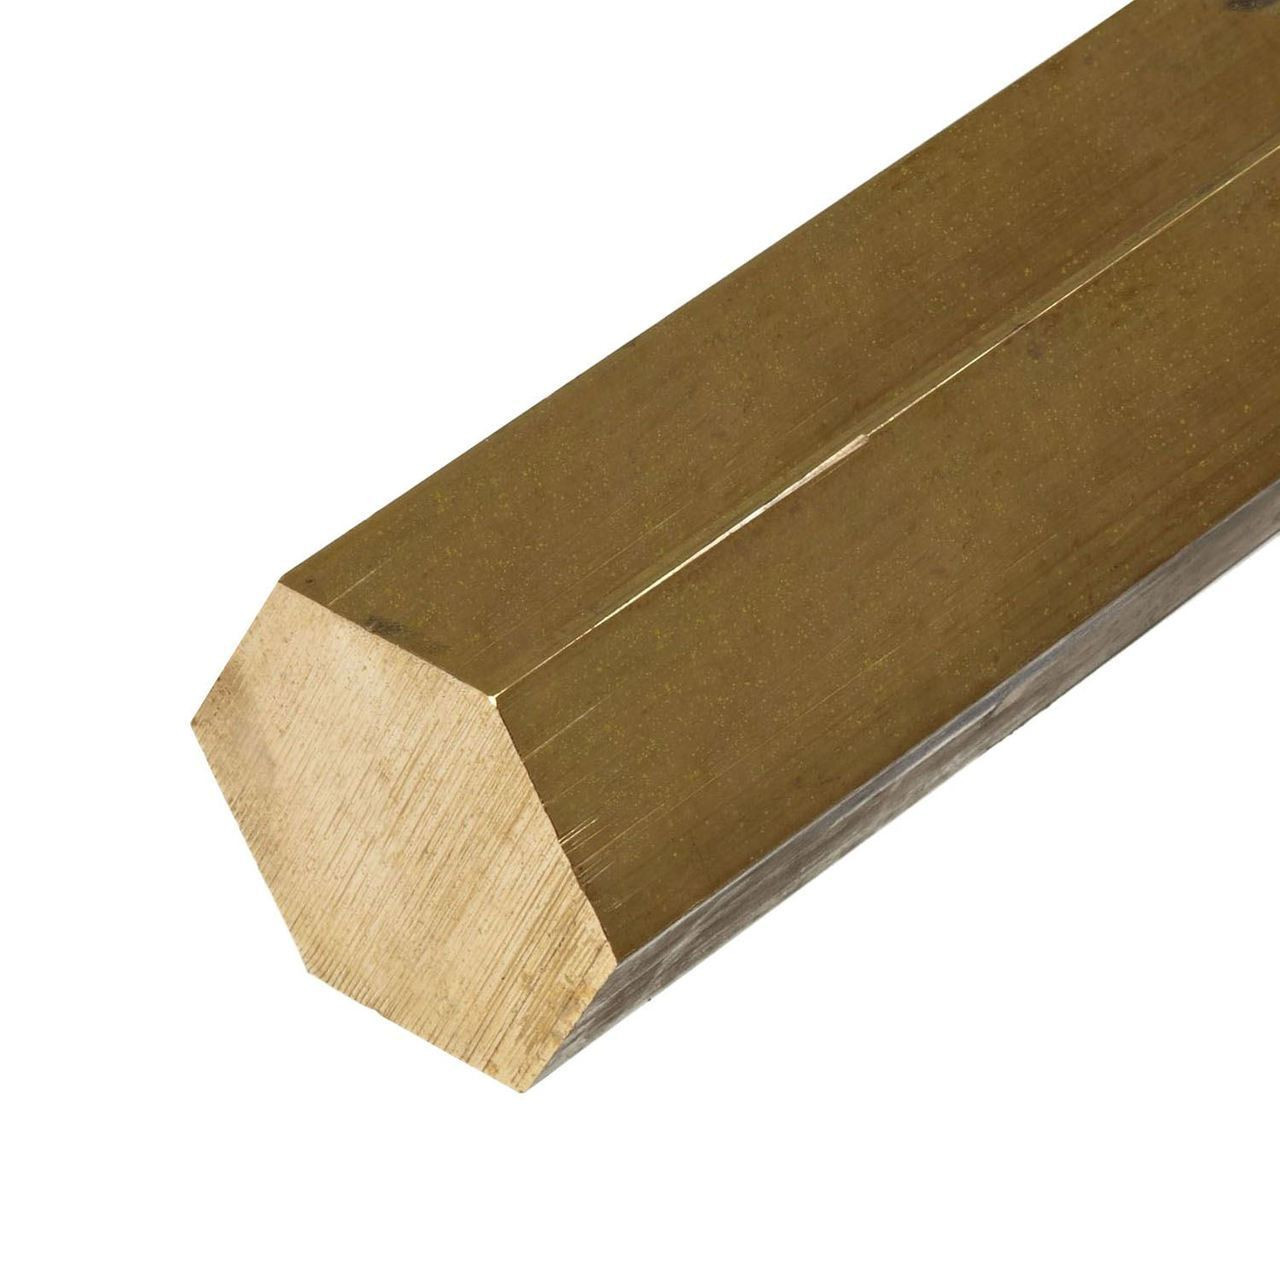 C360 Brass Hexagon Bar, 0.218 (7/32 inch) x 12 Feet (3 pieces, 48 inches)